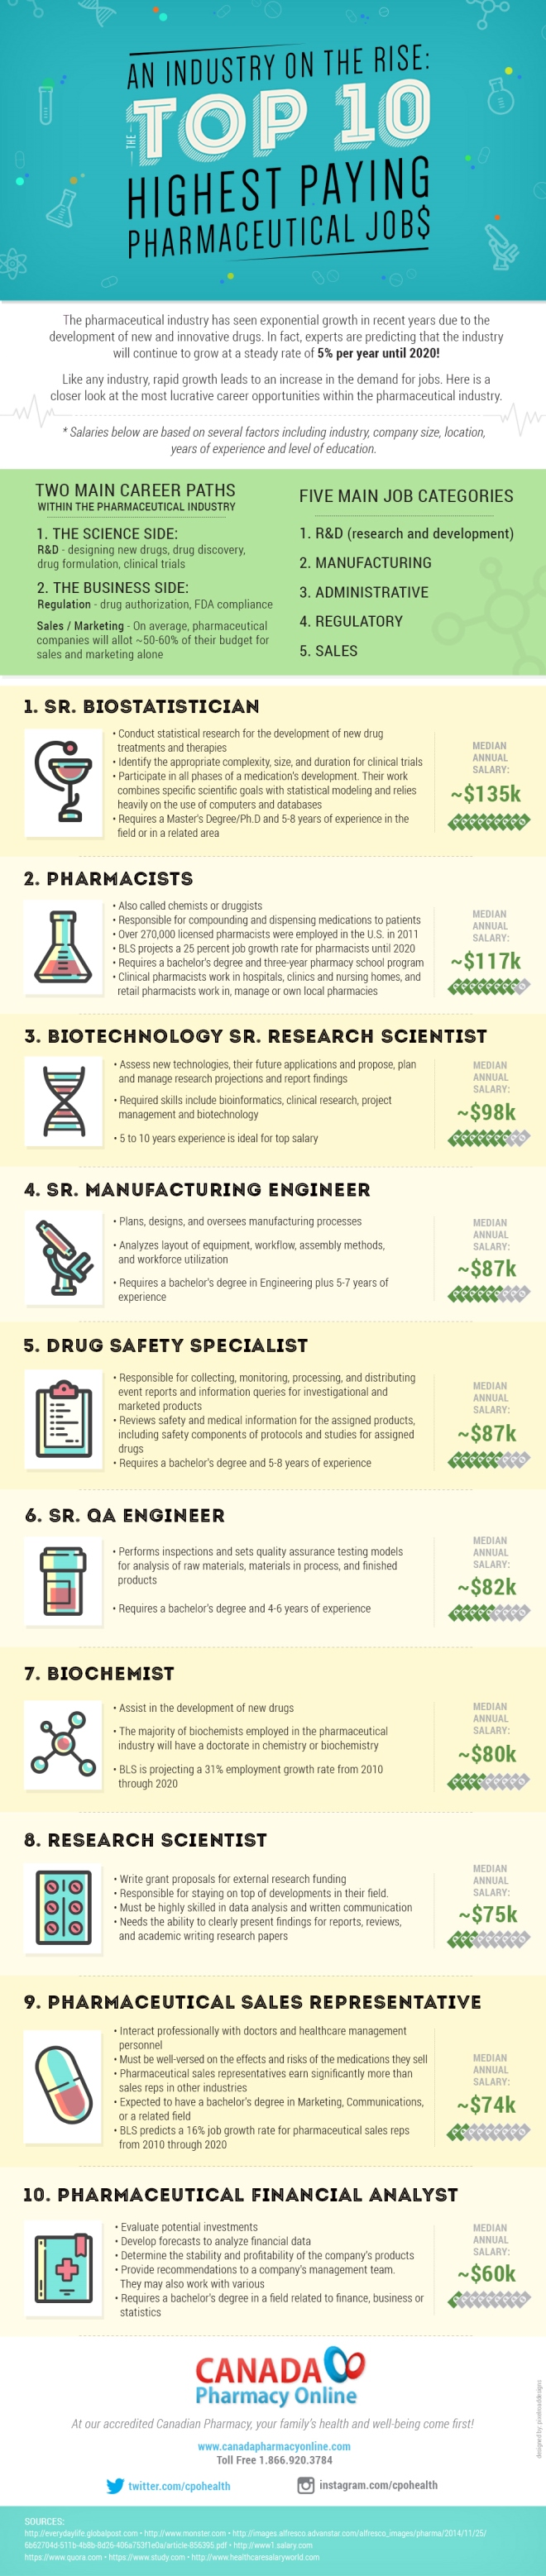 An Industry On The Rise The Top 10 Highest Paying Pharmaceutical